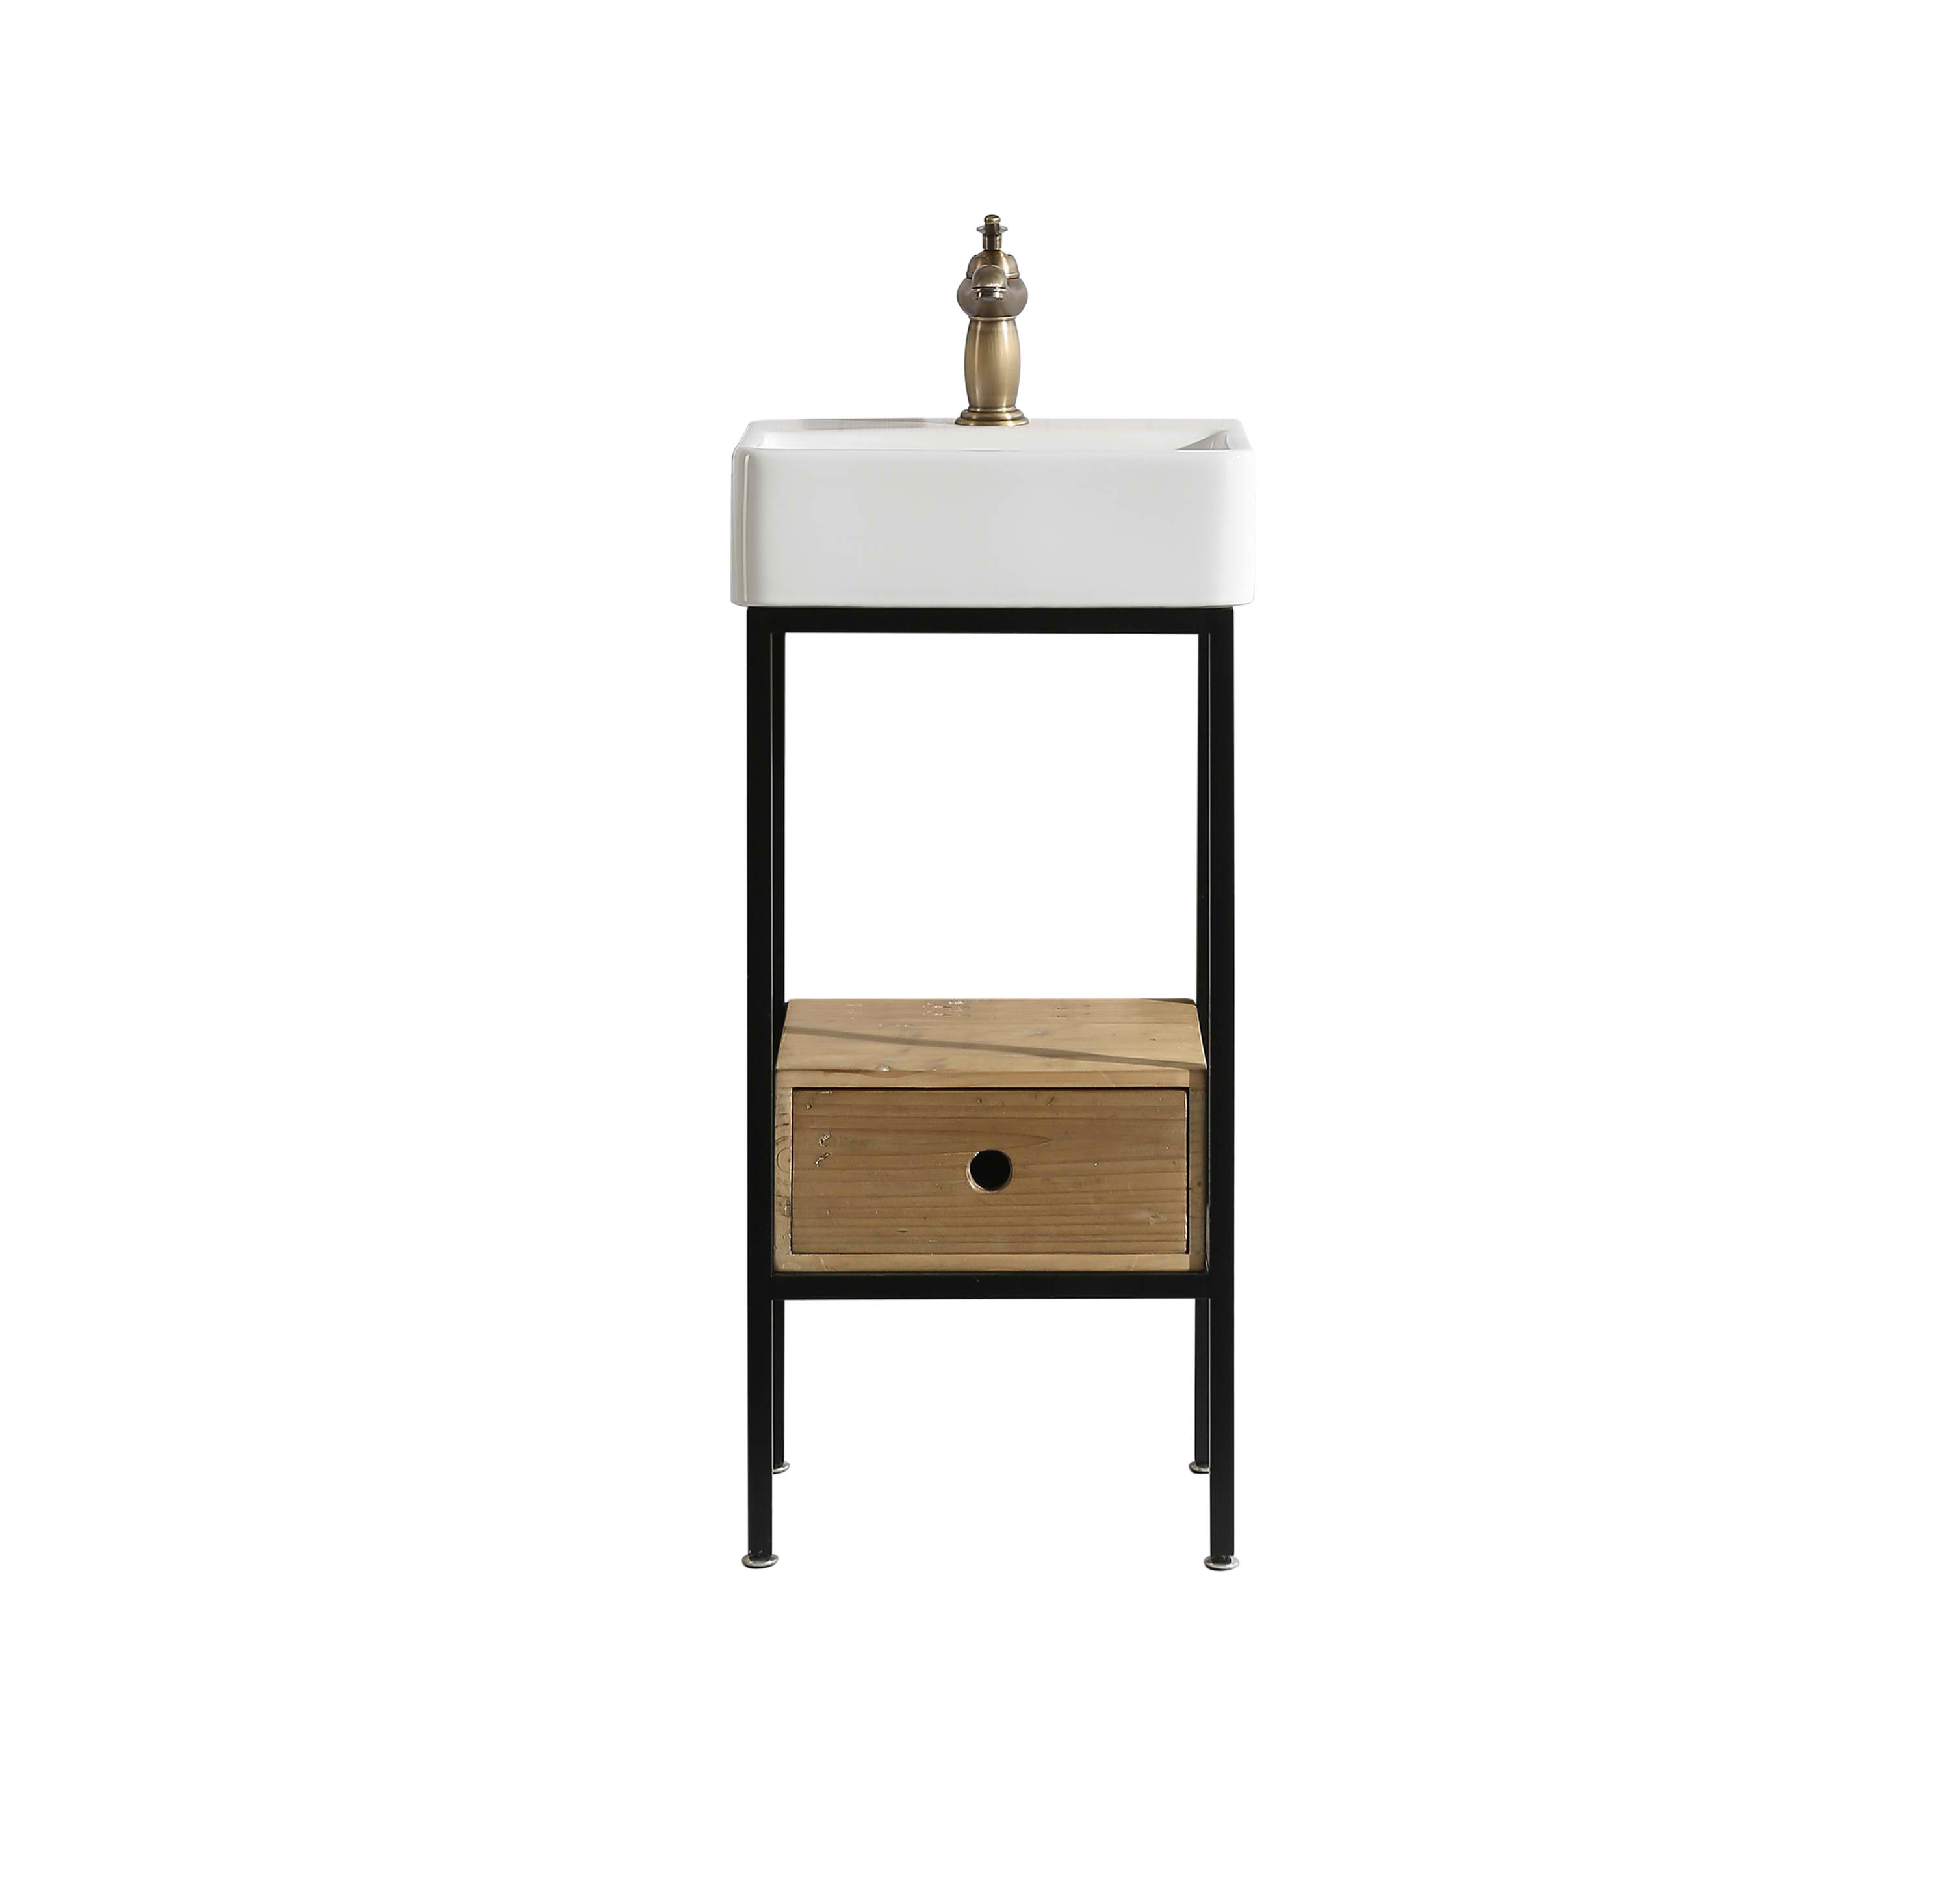 "Rustic 16"" Single Sink Bathroom Vanity with Porcelain Integrated Counterop in Natural Rustic Wood Finish"